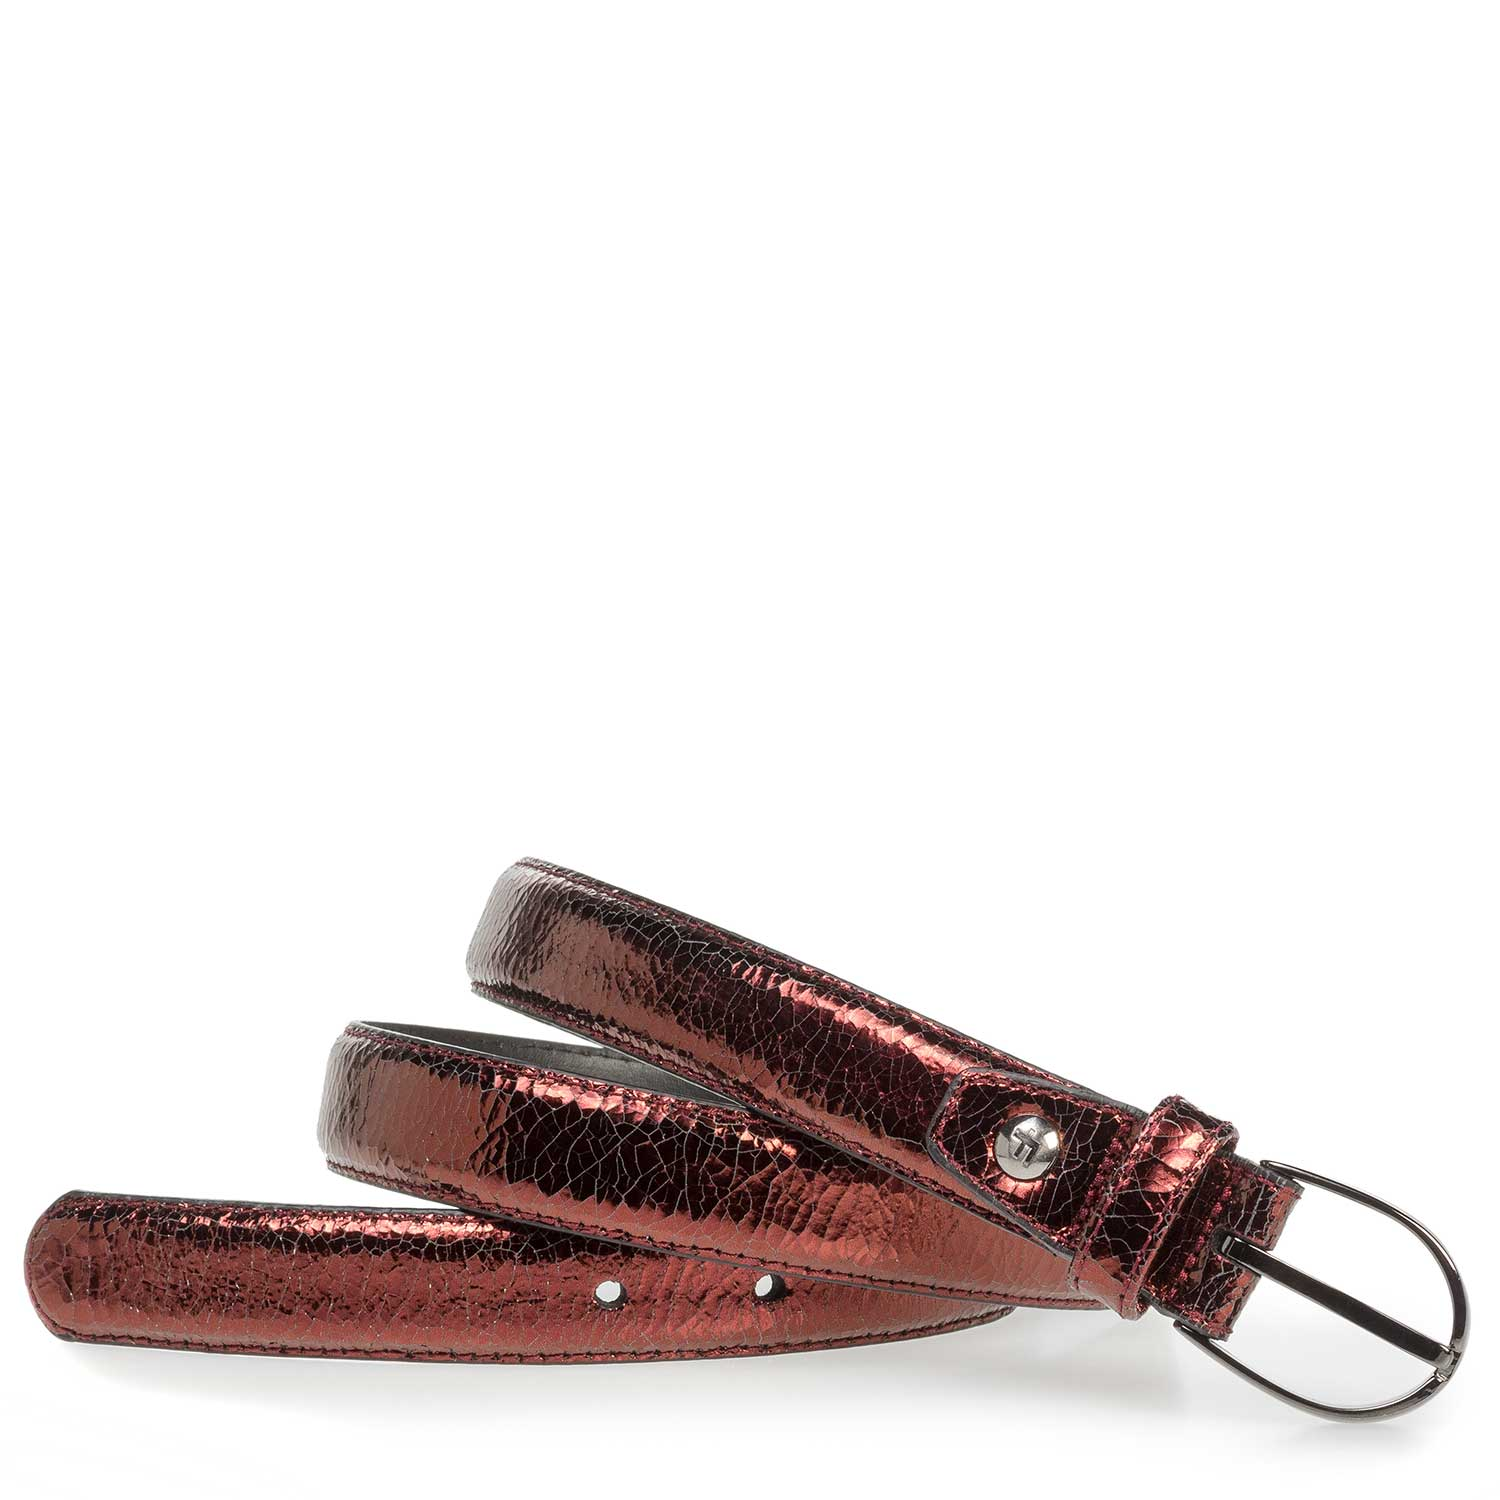 75813/47 - Red leather belt with metallic print